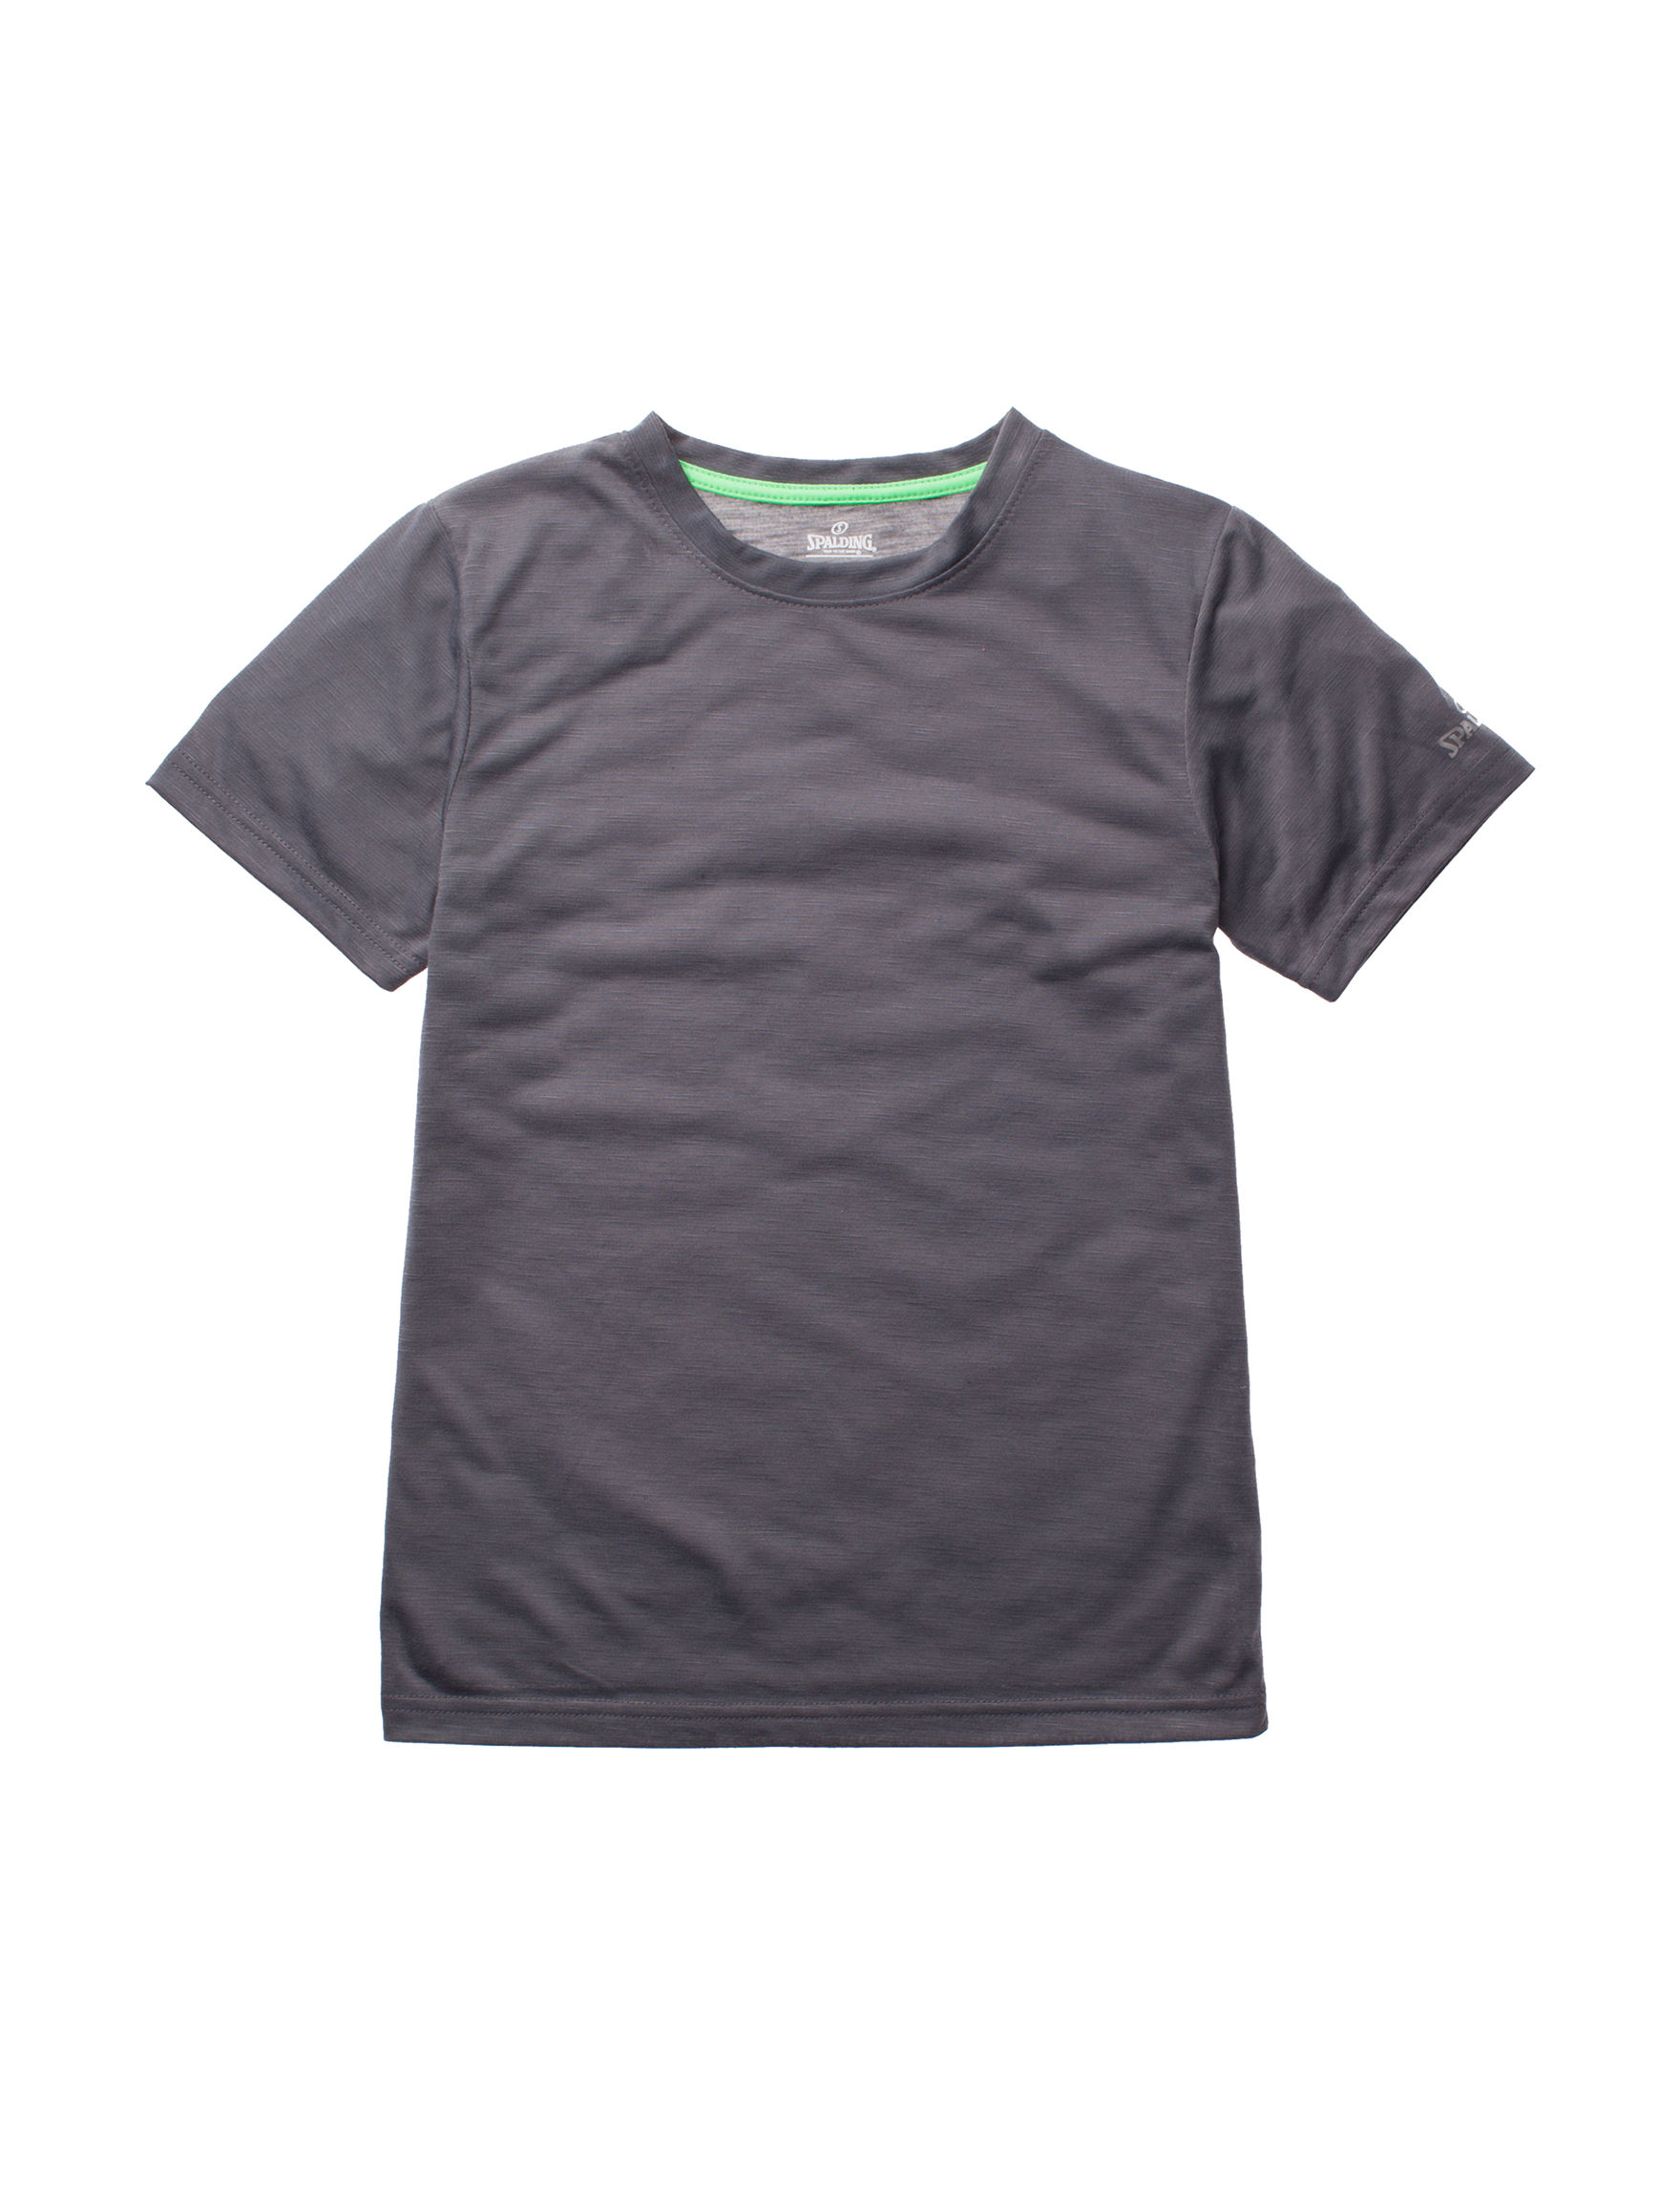 Spalding Charcoal Tees & Tanks